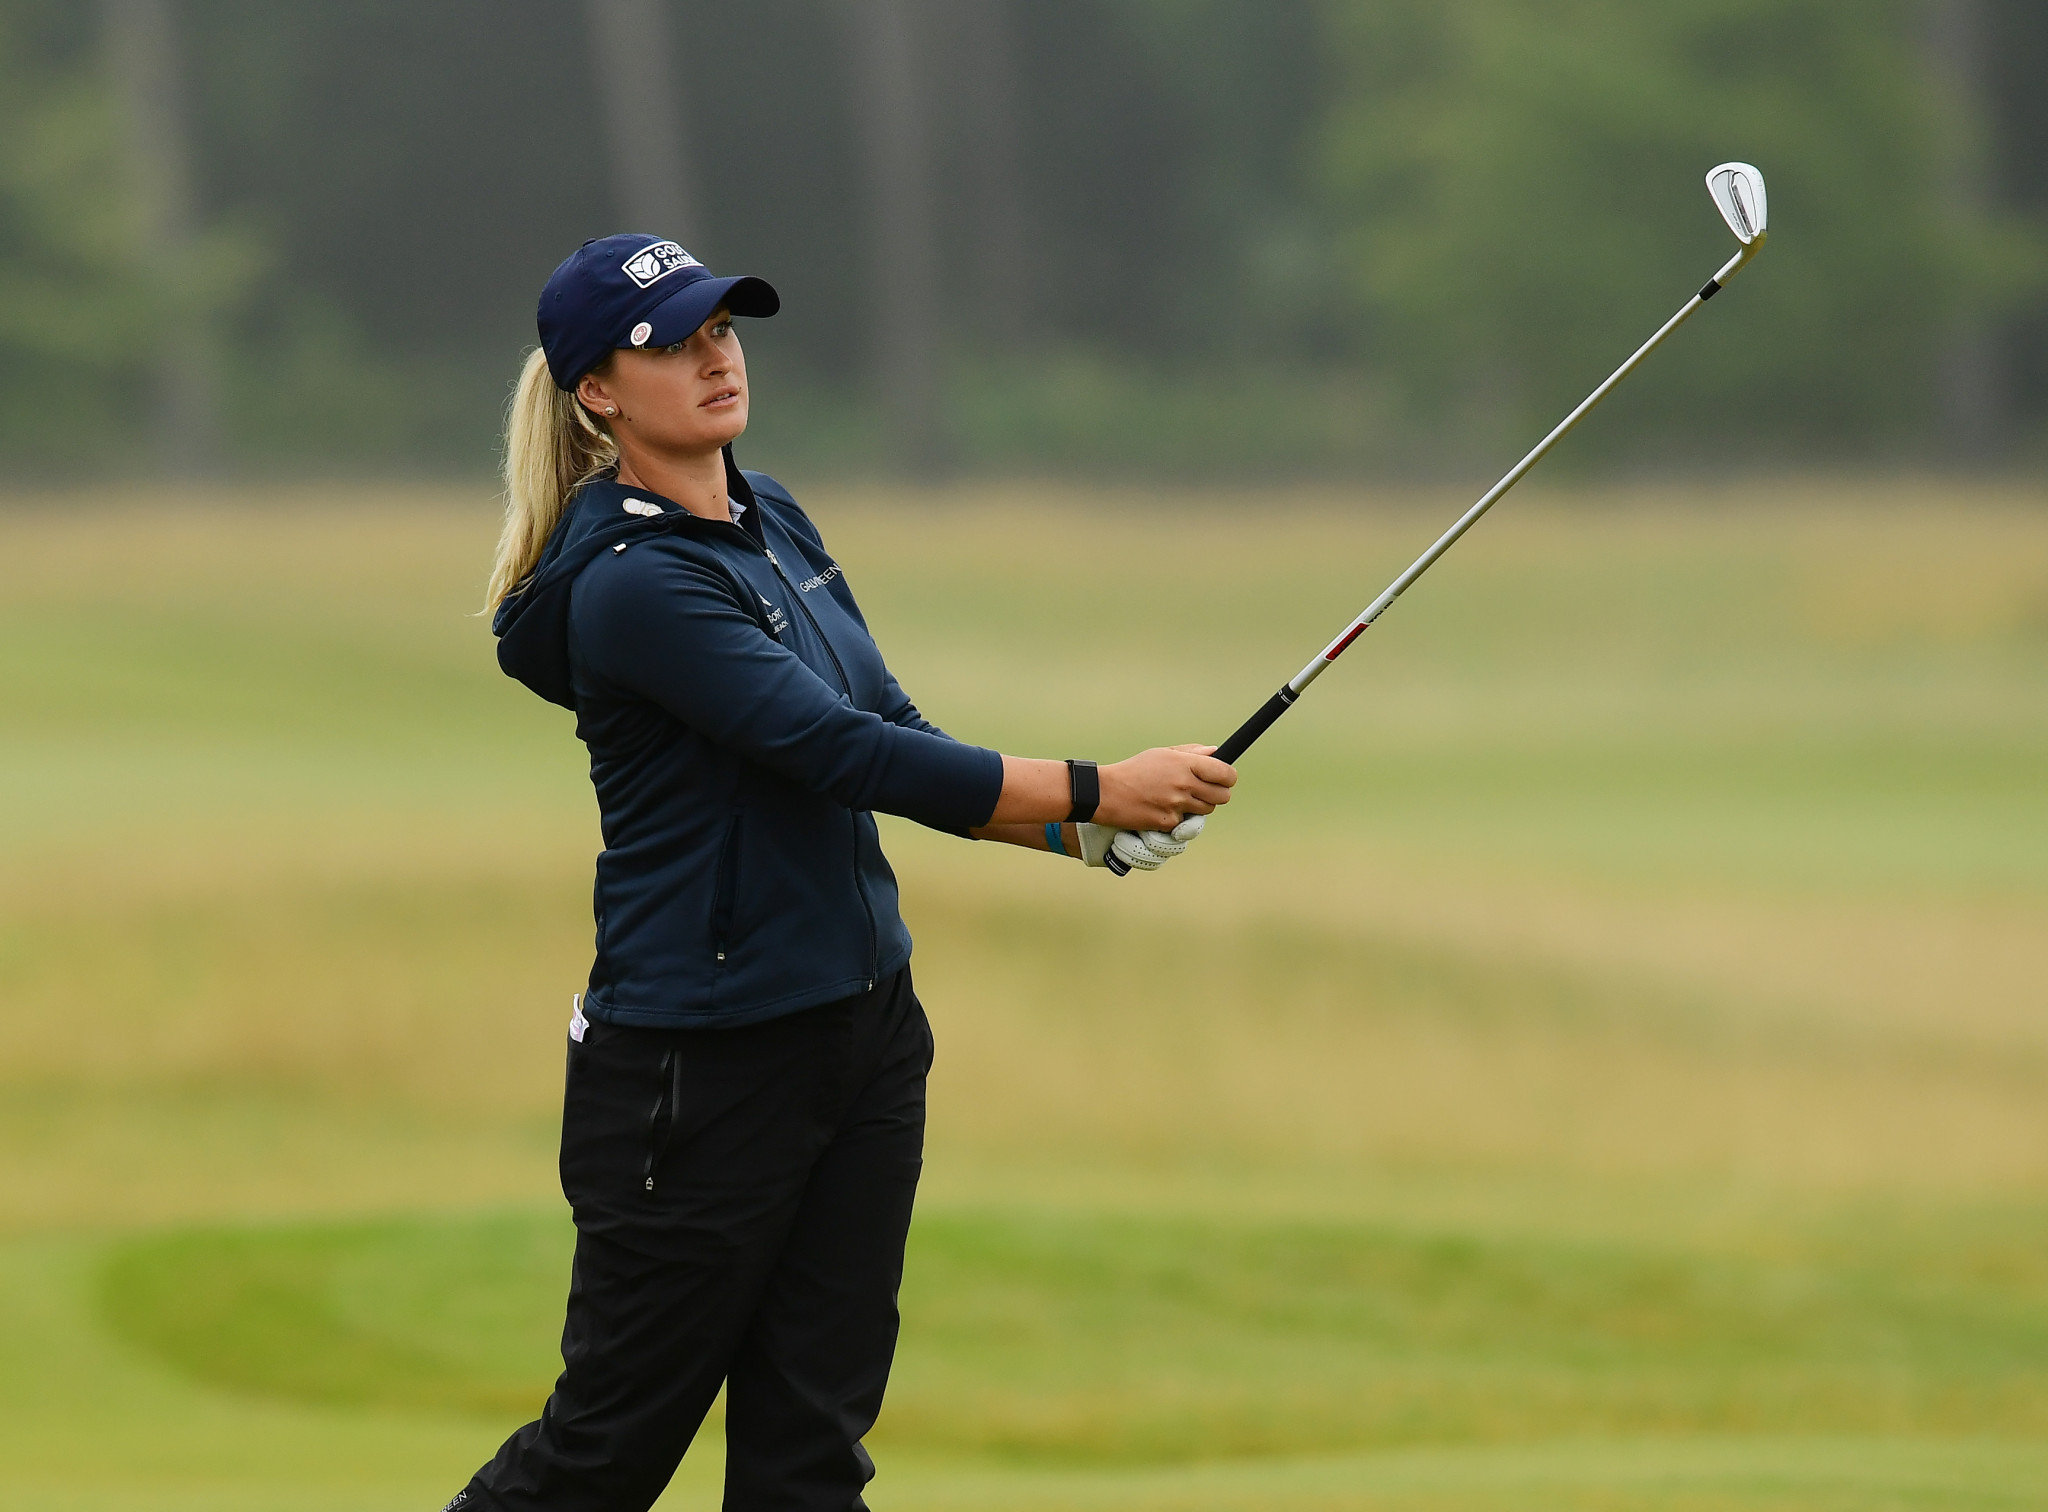 Amy Boulden of Wales won Qualifying School when it was last held at La Manga Club in 2020 ©Getty Images